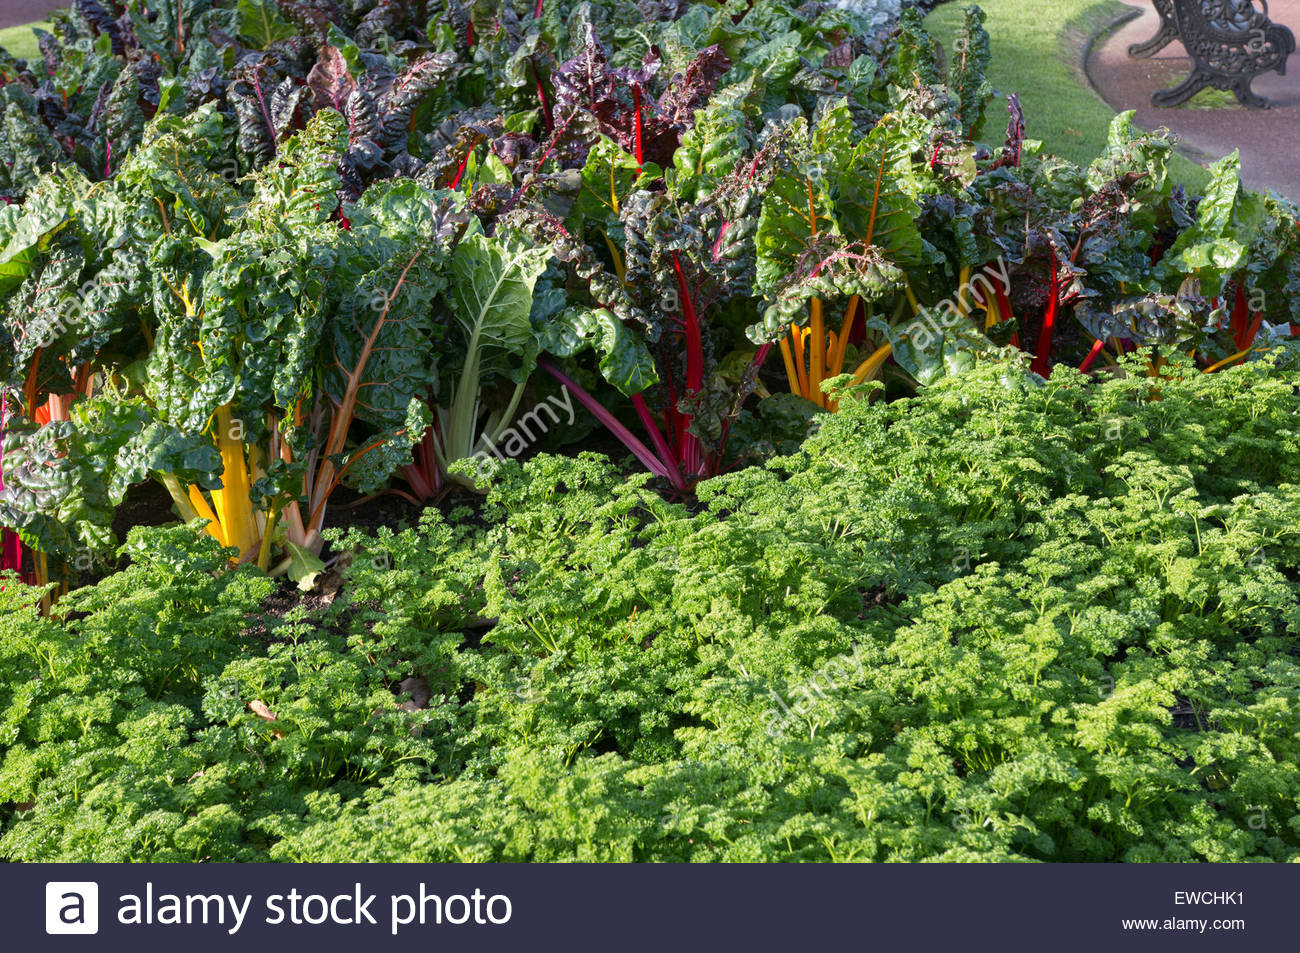 Silverbeet and parsley in ornamental garden - Stock Image